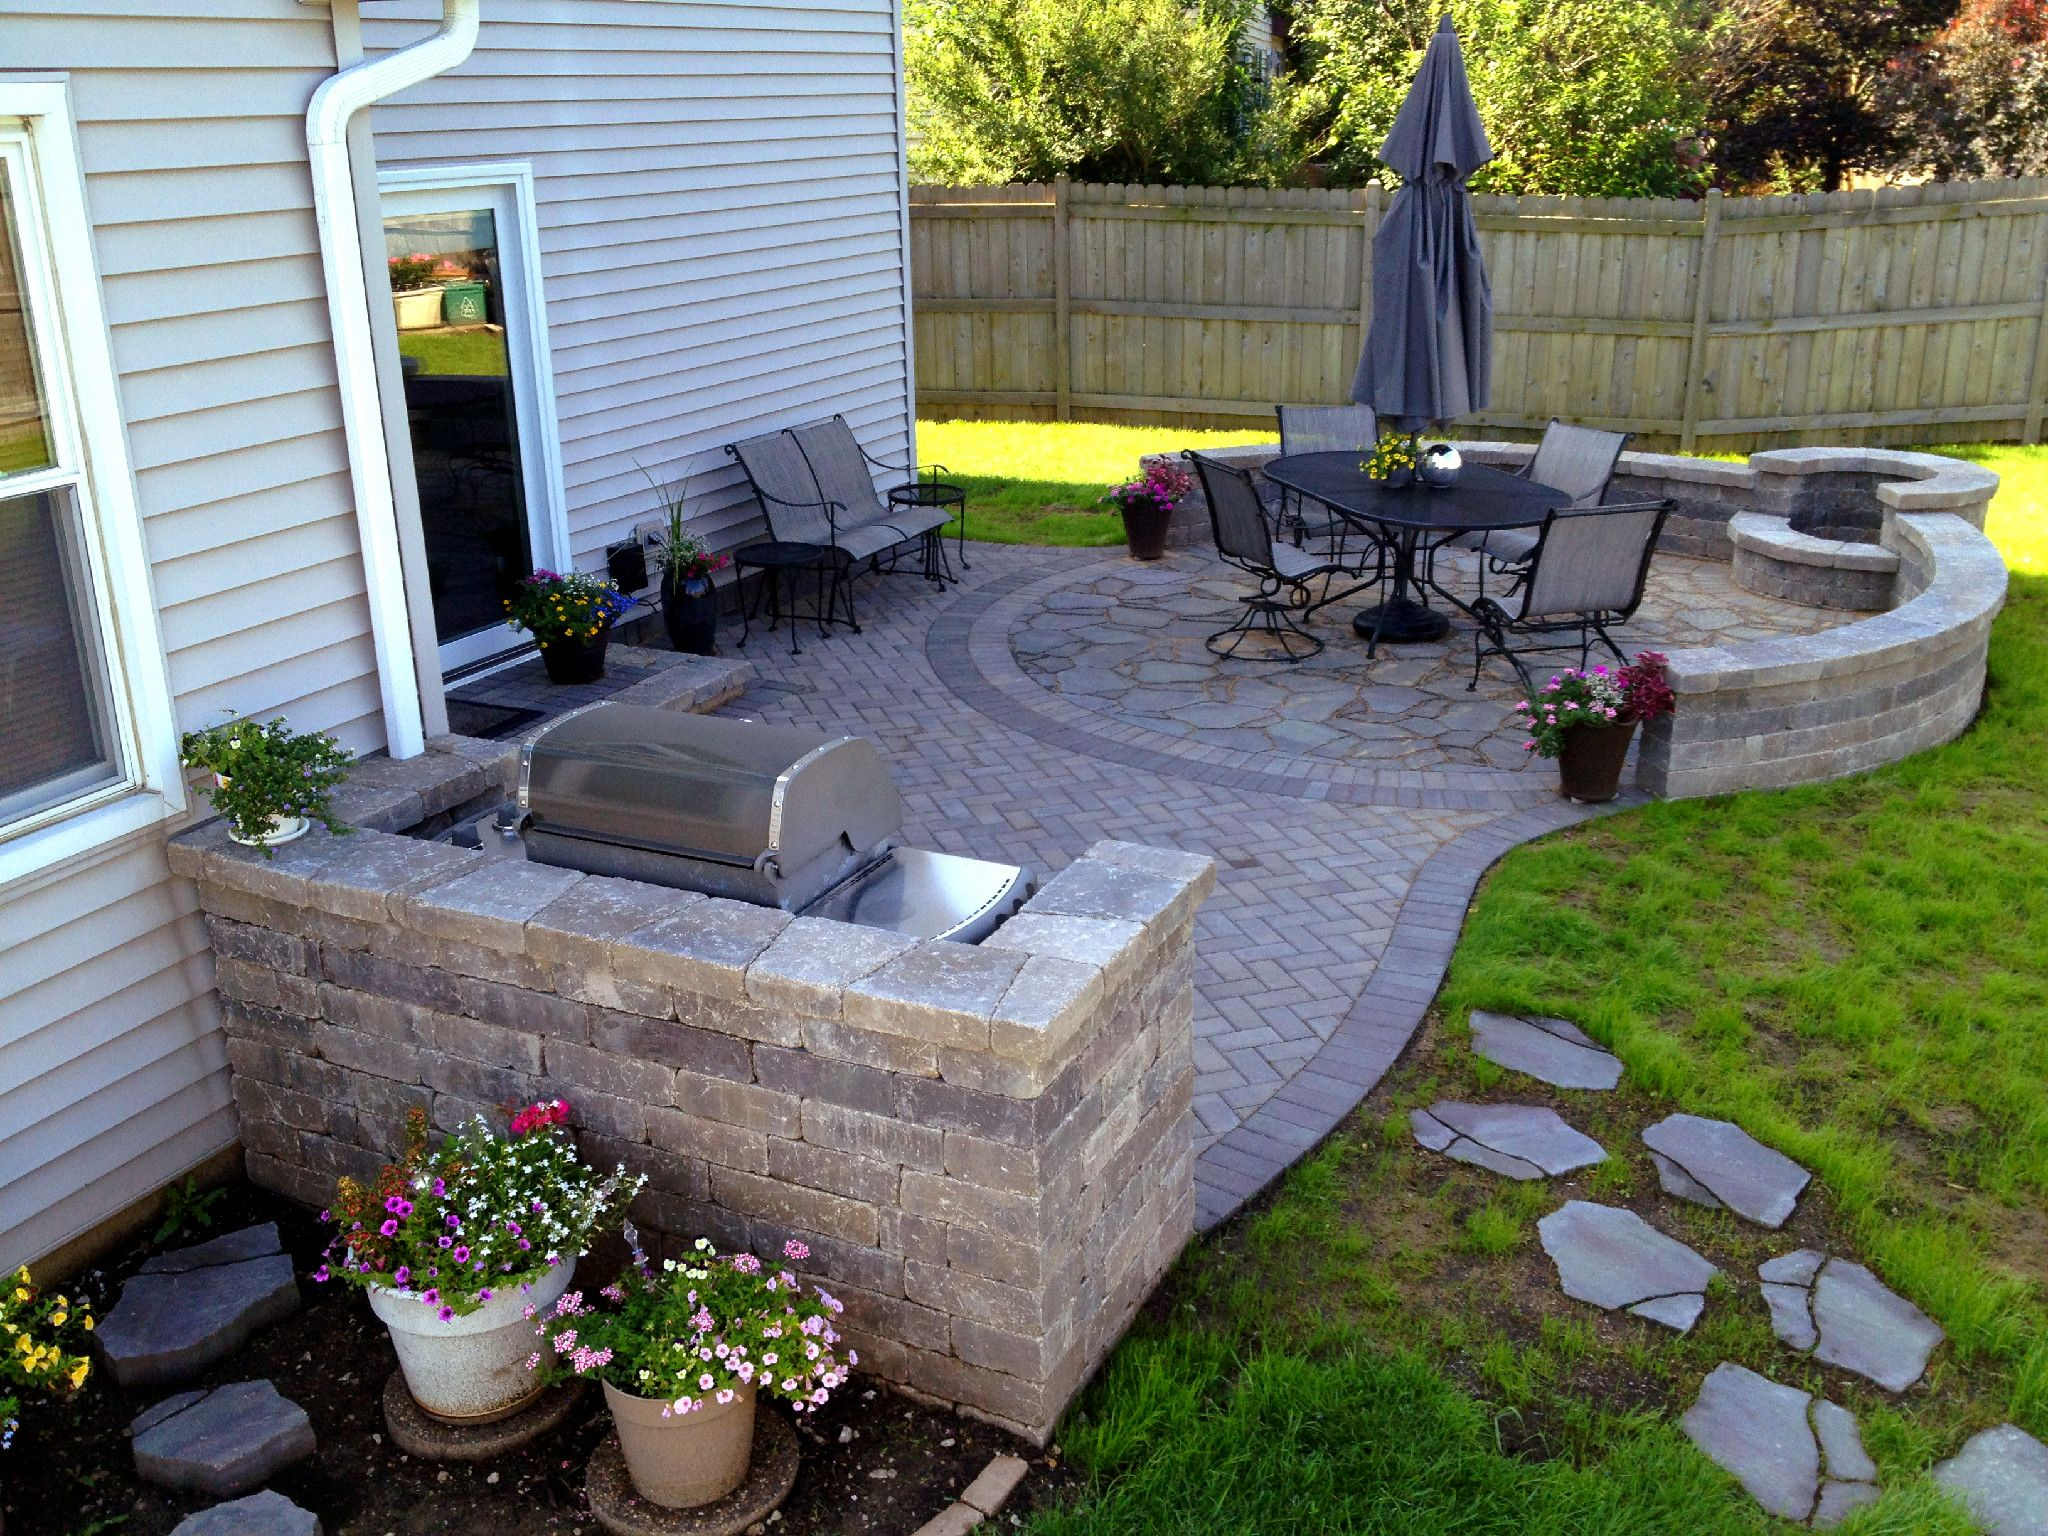 Backyard patio ideas - Paver Patio With Grill Surround And Fire Pit By Hoffman Estates Il Patio Builder Firepit Ideaspatio Ideasbackyard